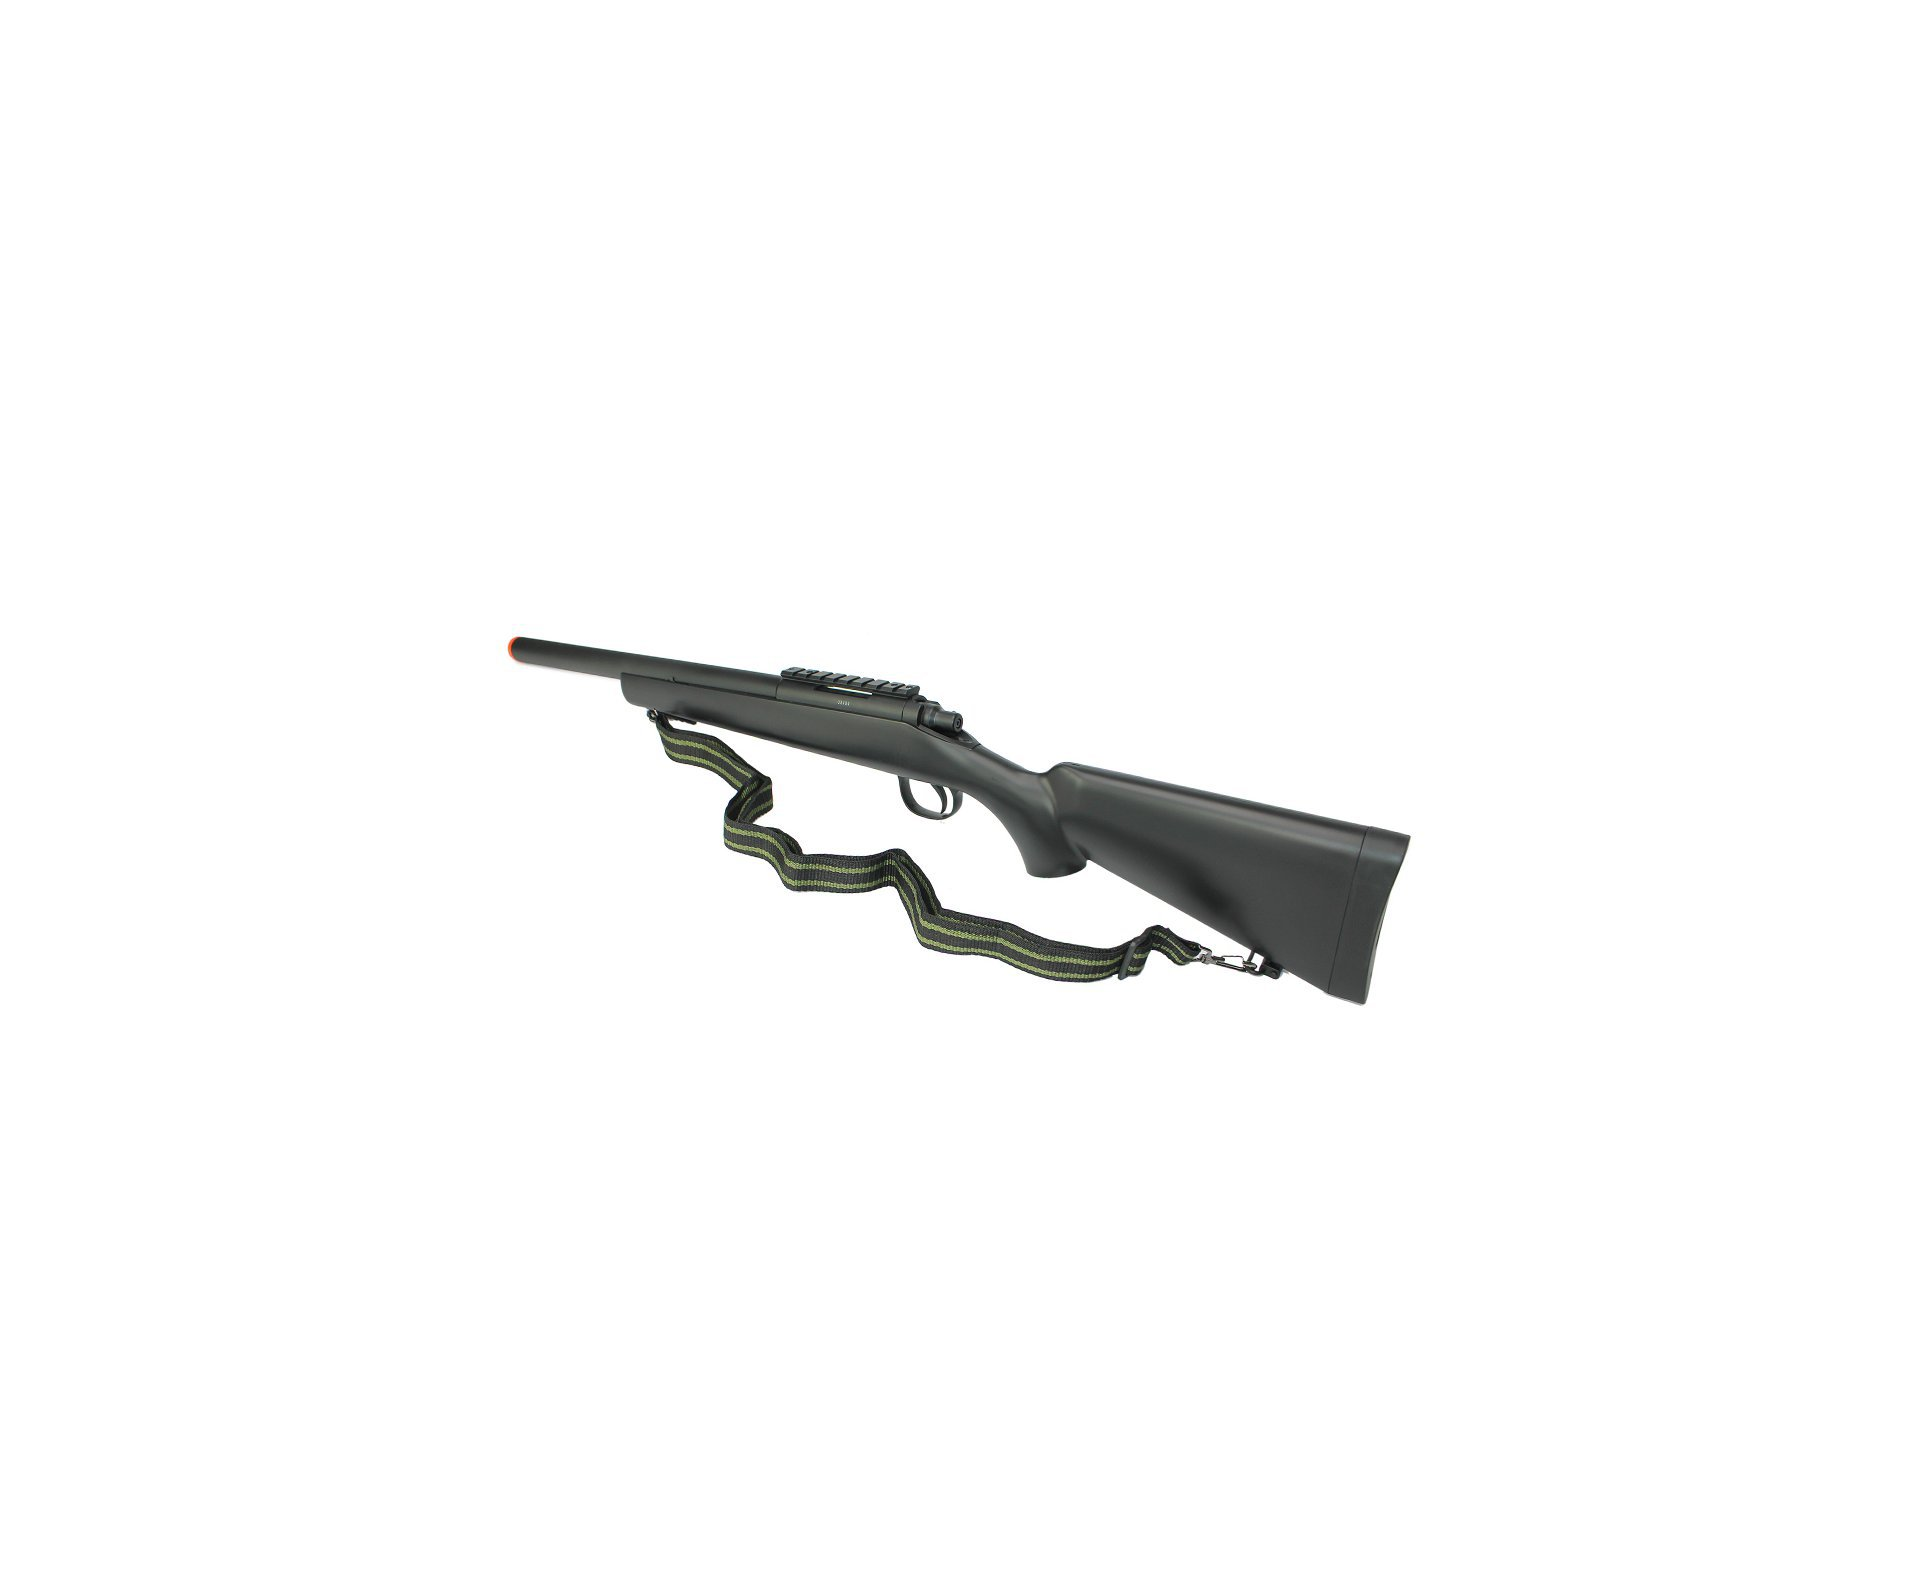 Rifle De Airsoft Sniper Spring Vsr Mb-02g Black 6,0mm Well